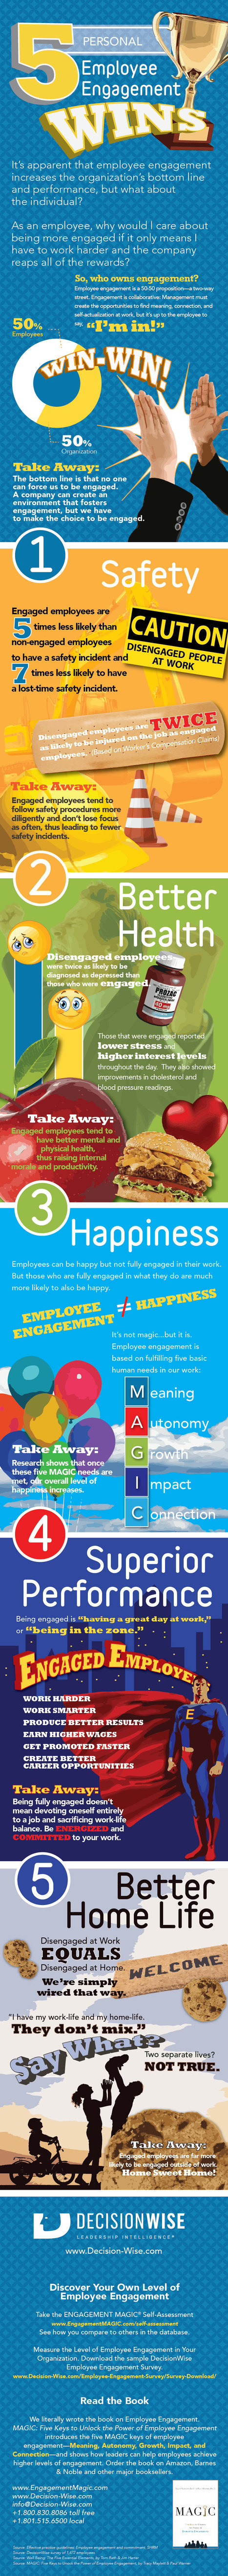 5 Personal Employee Engagement Wins Infographic | Global Employee Engagement | Scoop.it